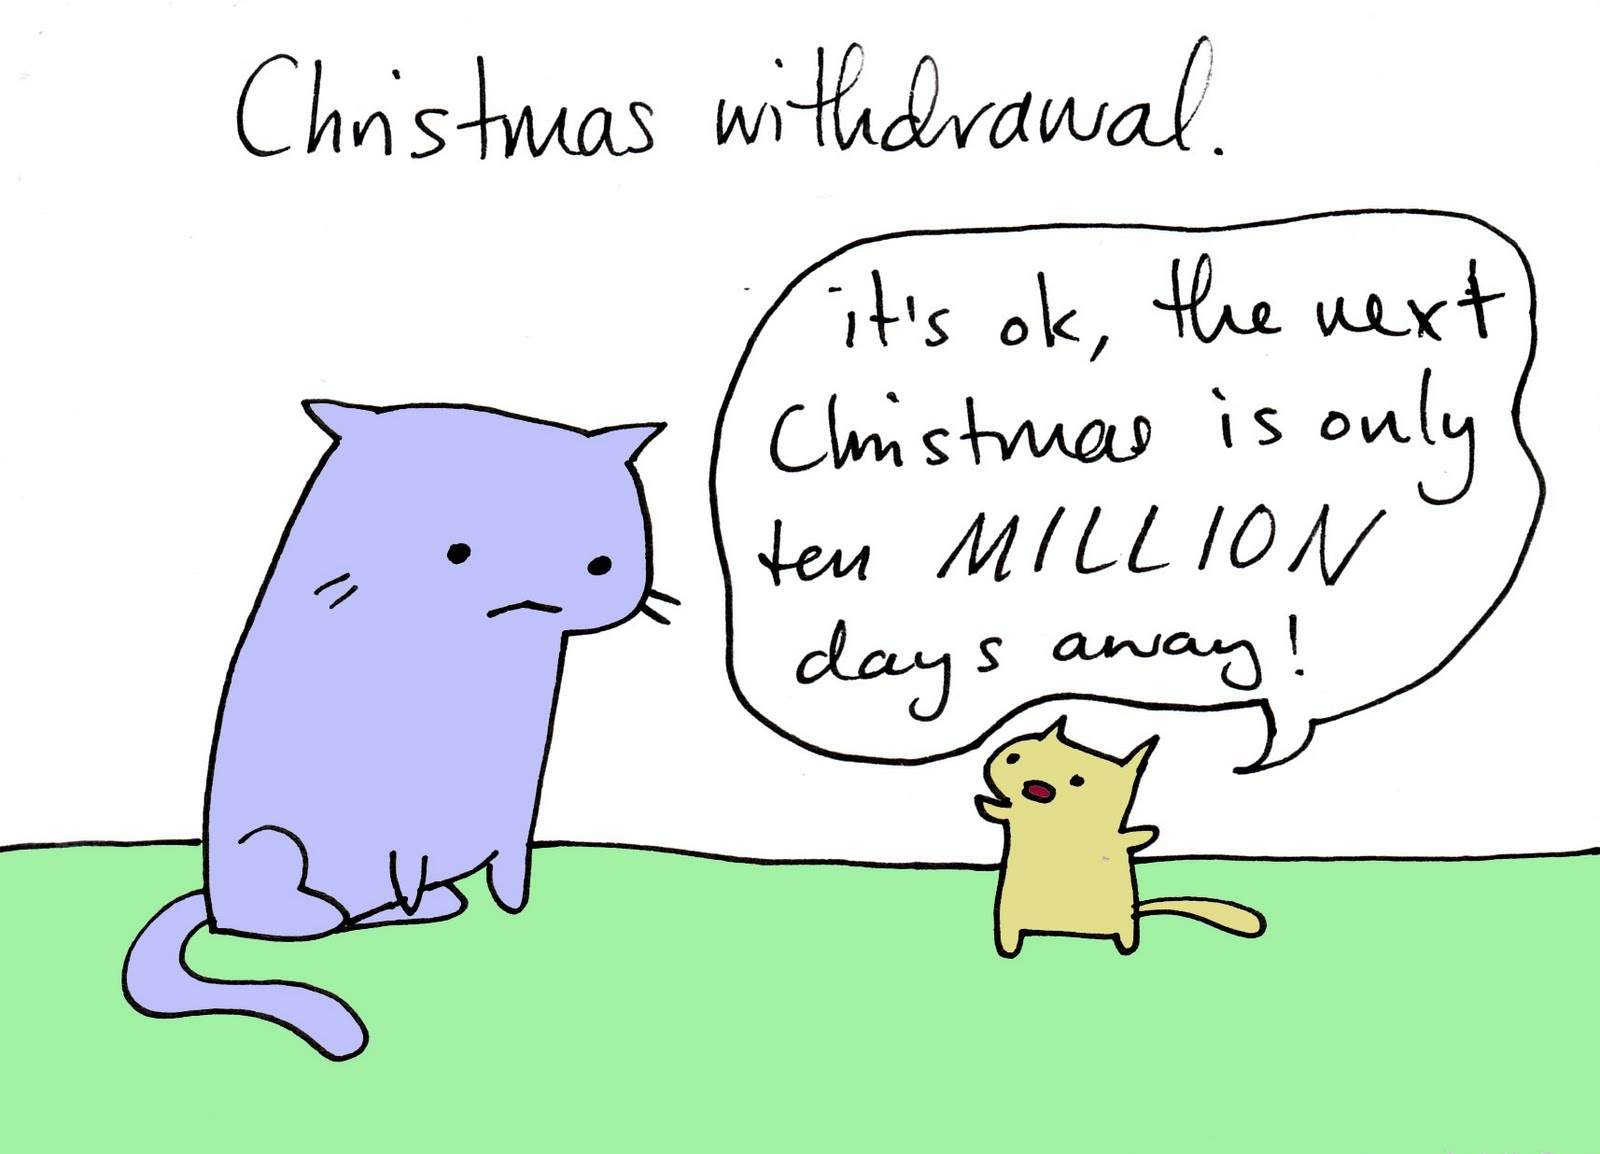 Flimsy the Kitten: Christmas withdrawal